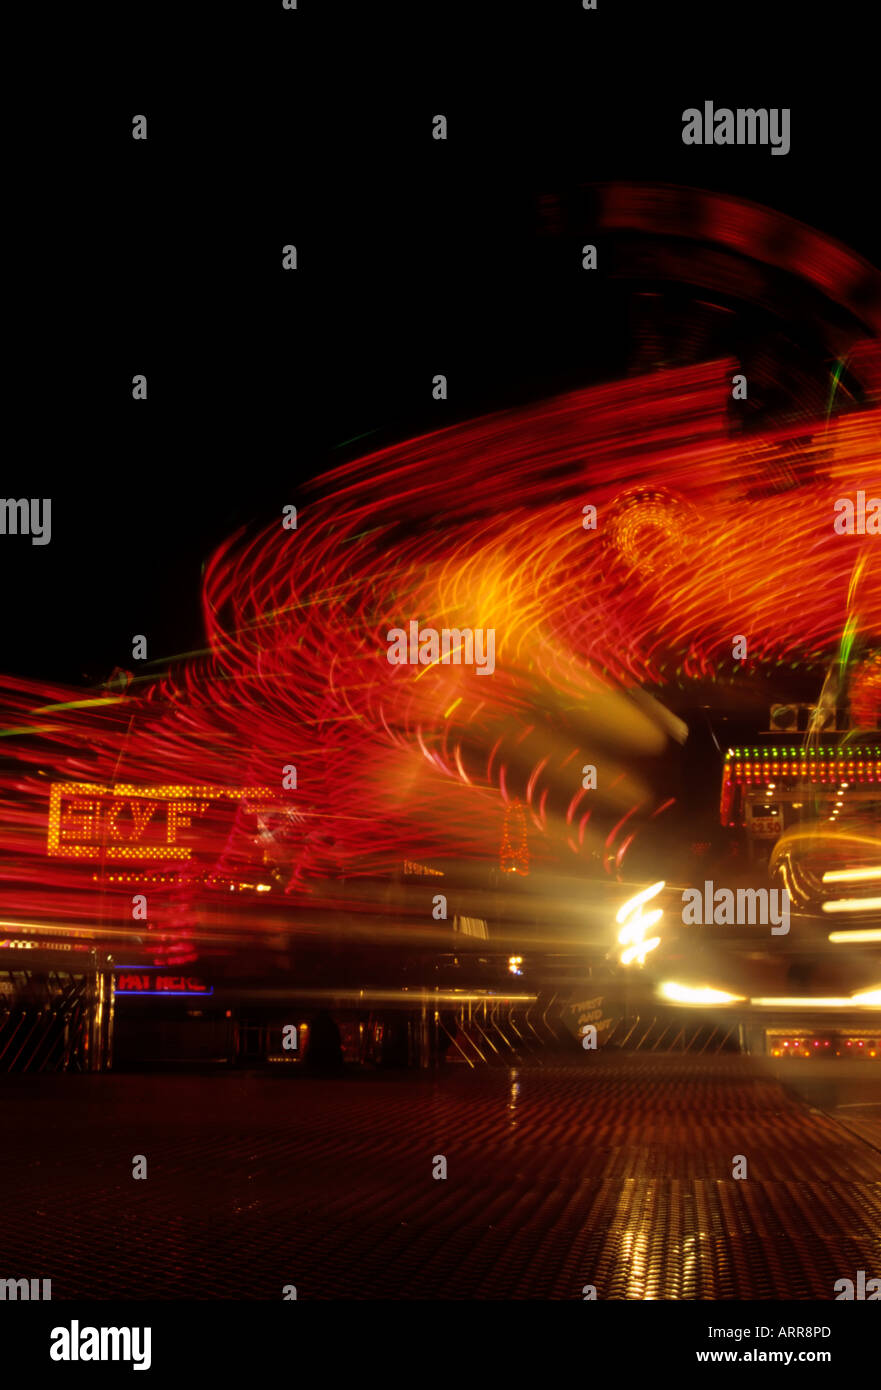 Light trails from fairground rides - Stock Image